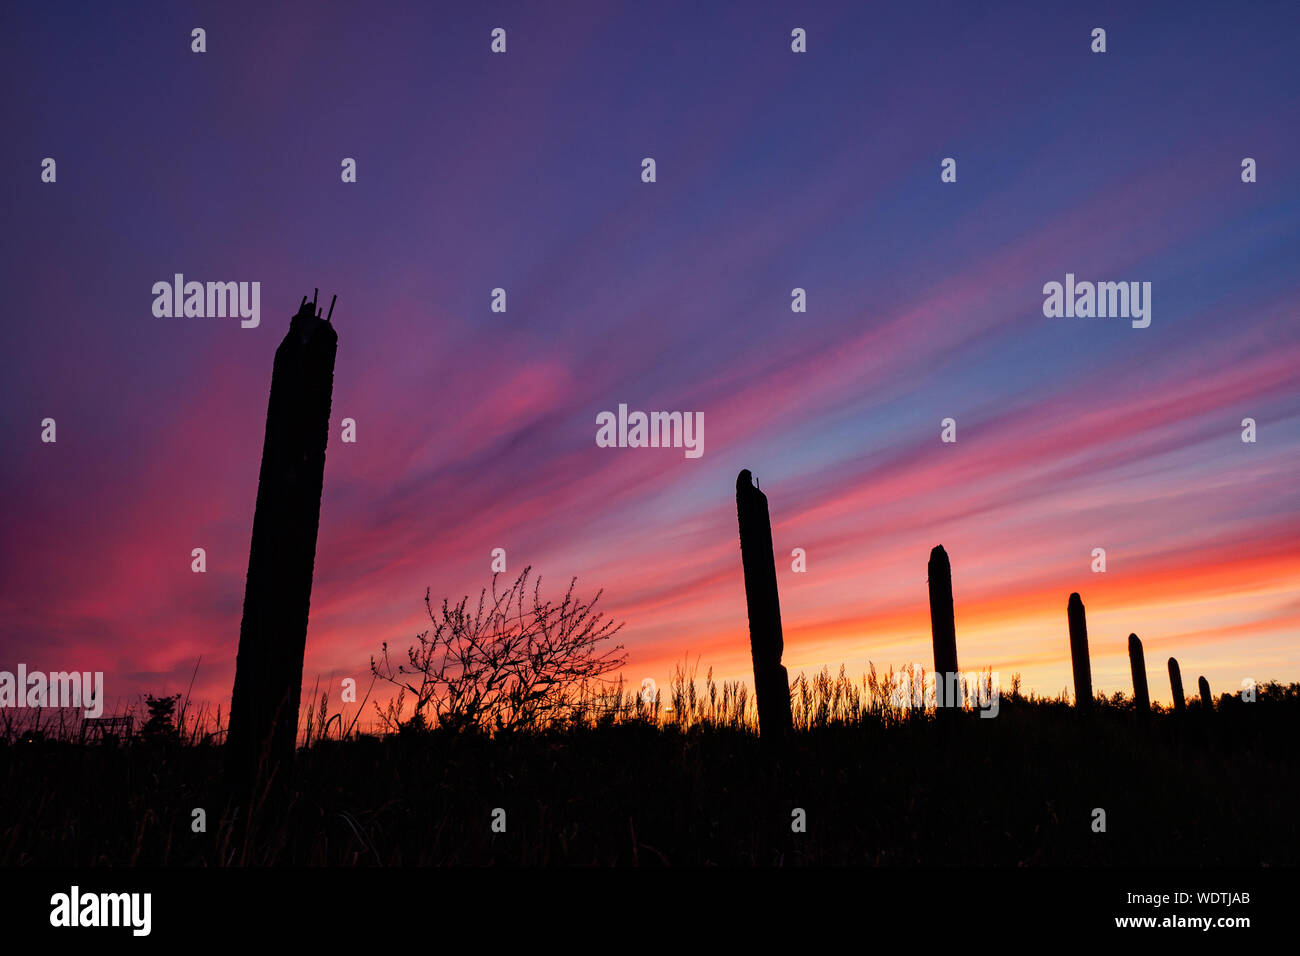 Silhouette Plants On Field Against Dramatic Sky During Sunset Stock Photo